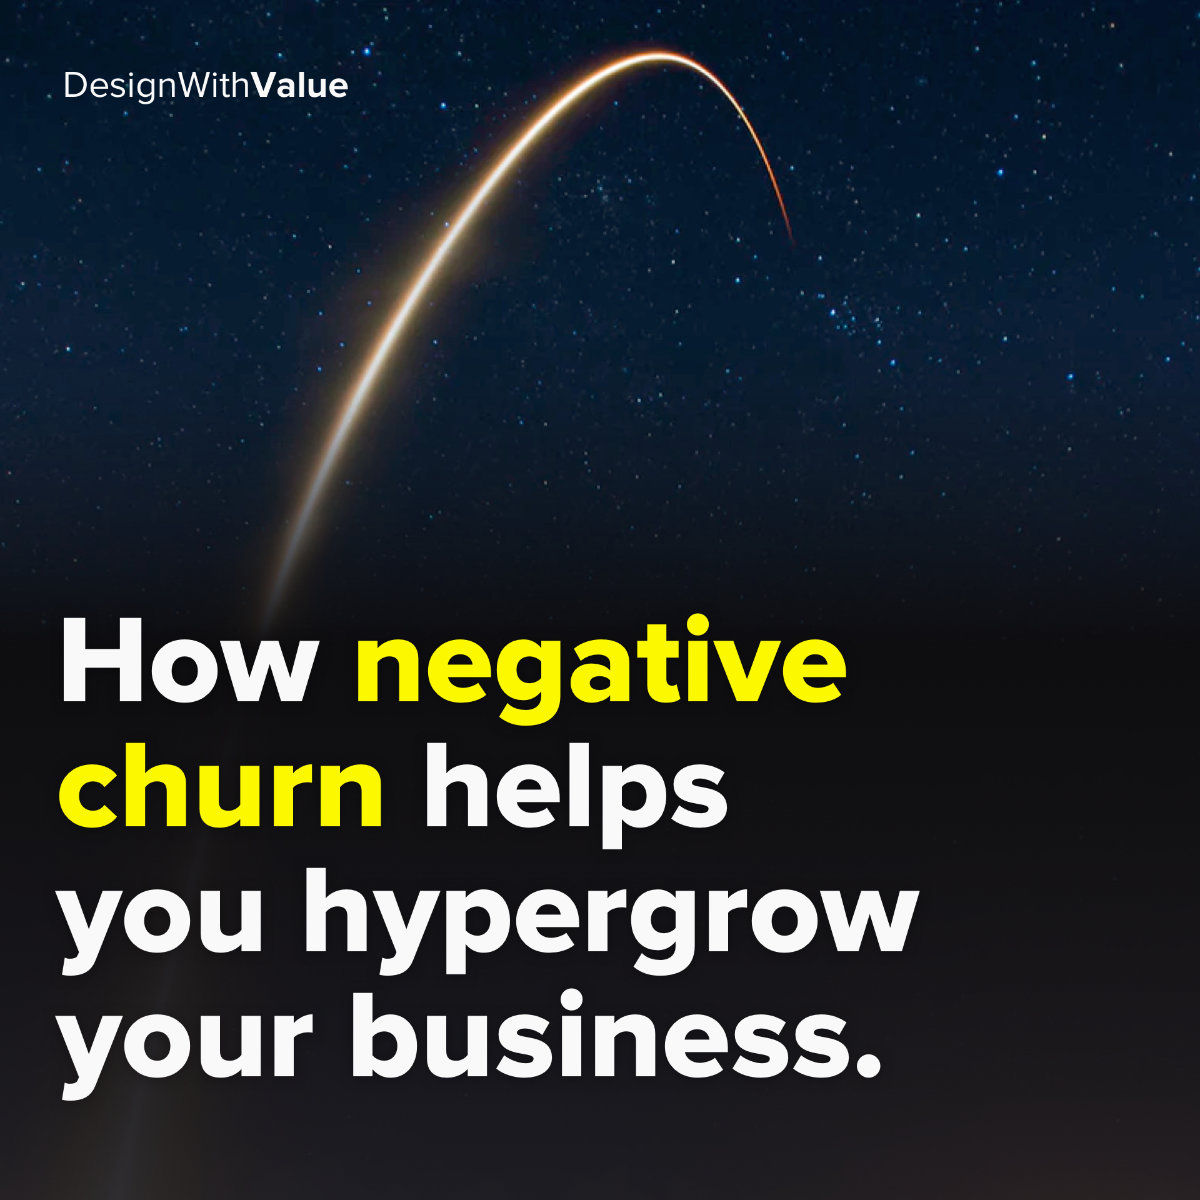 How negative churn helps you hypergrow your business